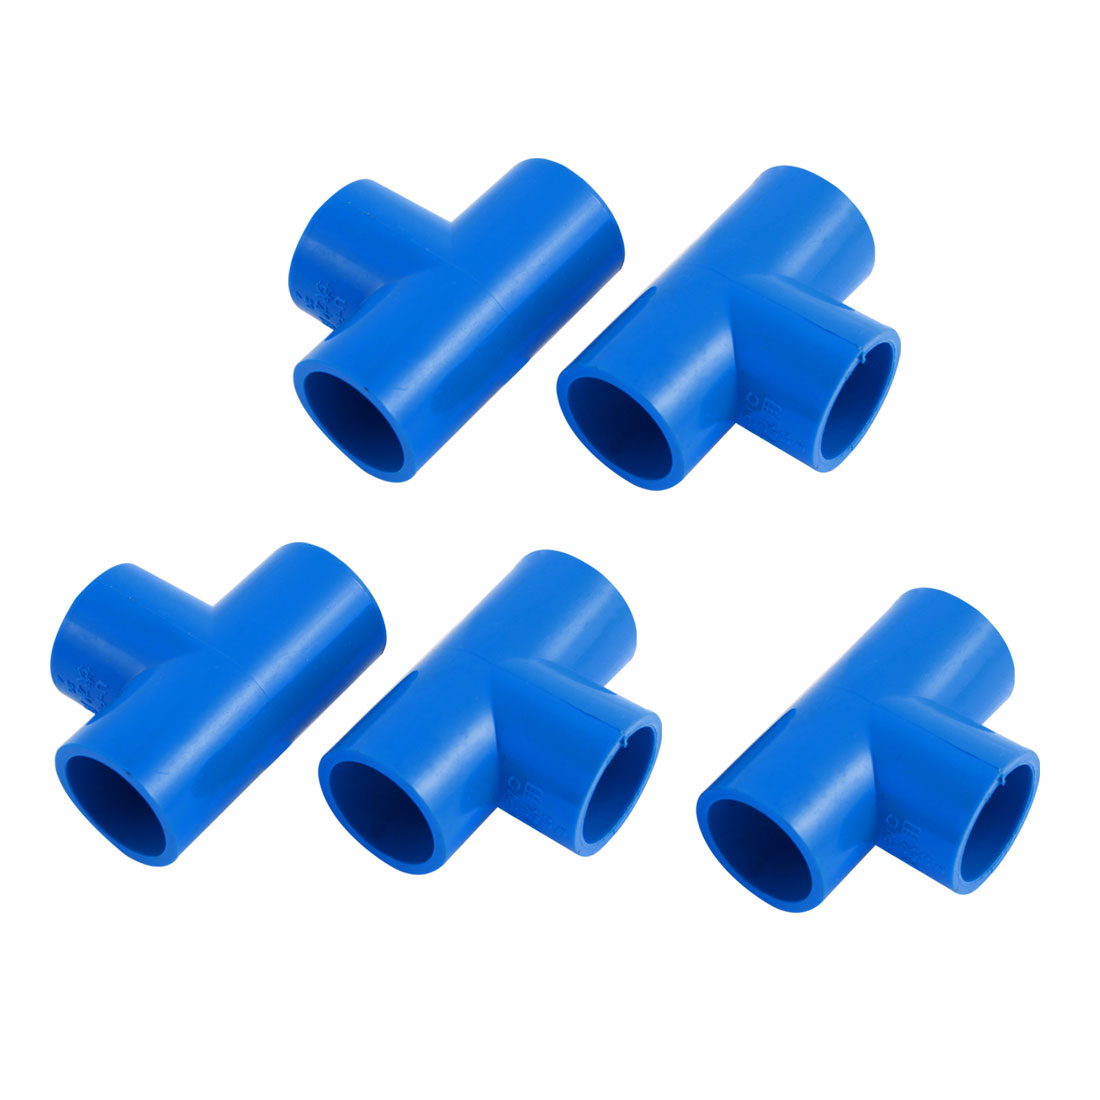 5PCS T-shaped 3 Way Drinking Water Tube Pipe Fitting Coupler Connector Adapter Plumbing Tubing Kitchen Bathroom